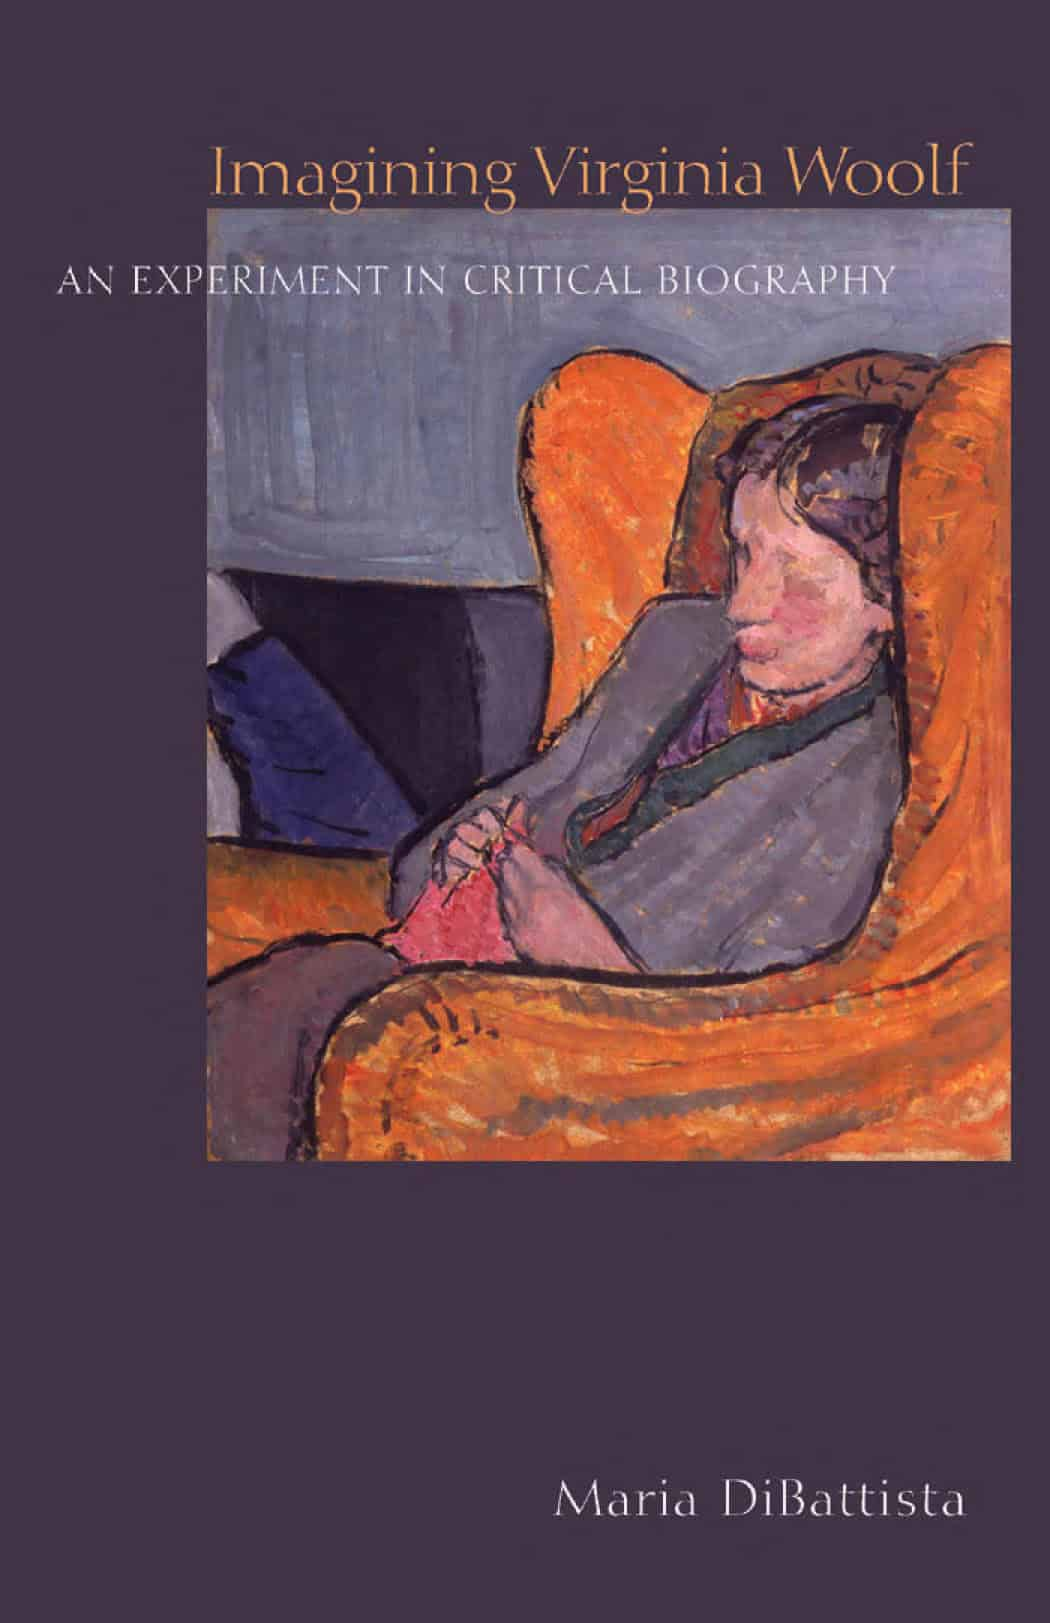 Virginia Woolf - Imagining Virginia Woolf: An Experiment in Critical Biography